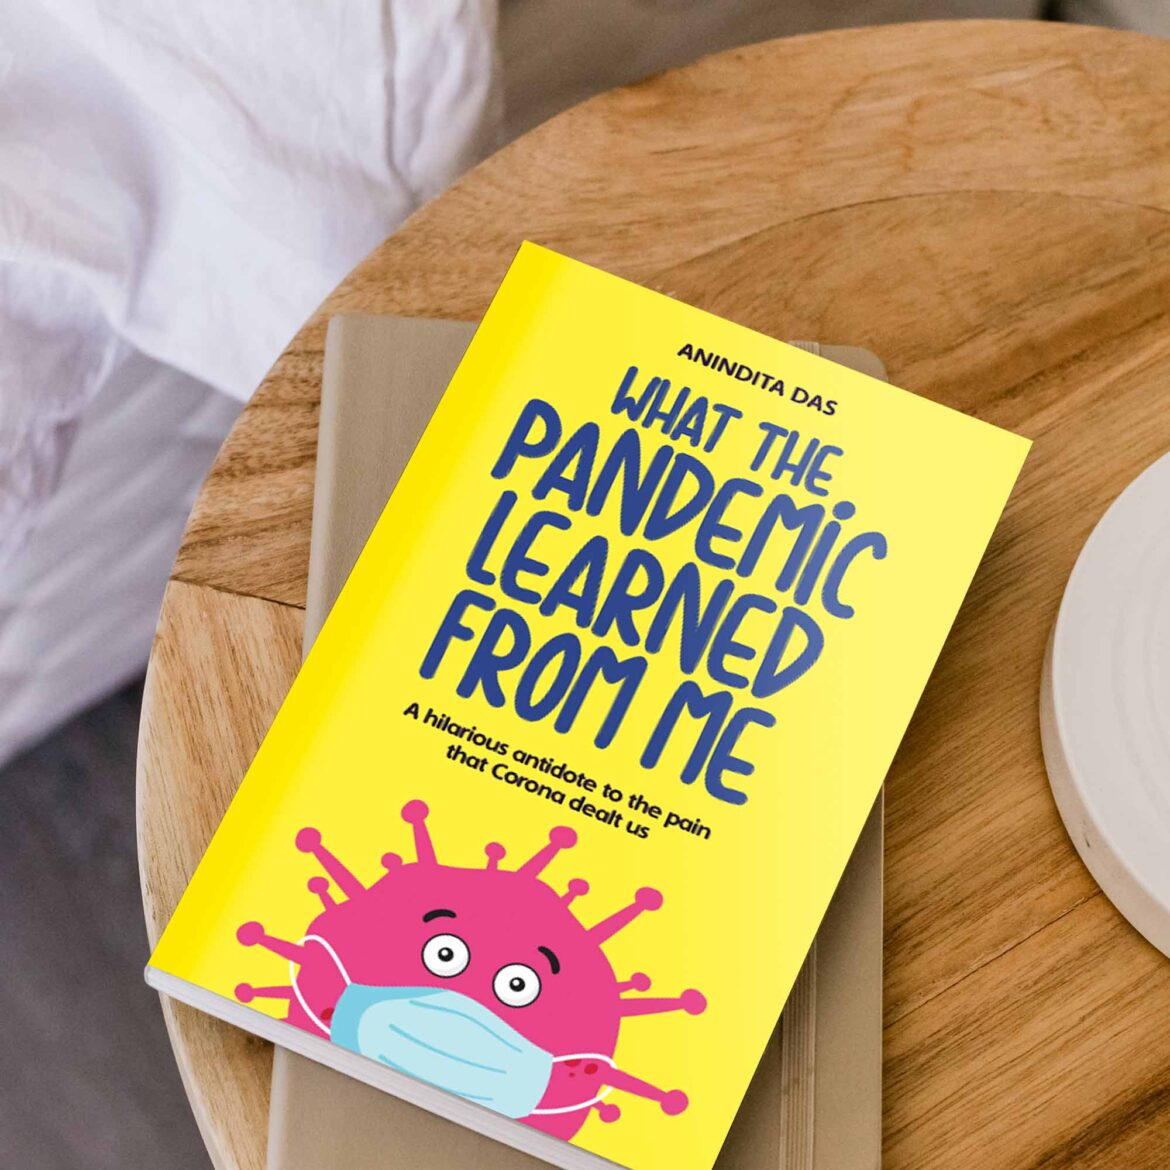 ANINDITA DAS'S DEBUT BOOK PACKS A HUMOROUS PUNCH: BOOK REVIEW